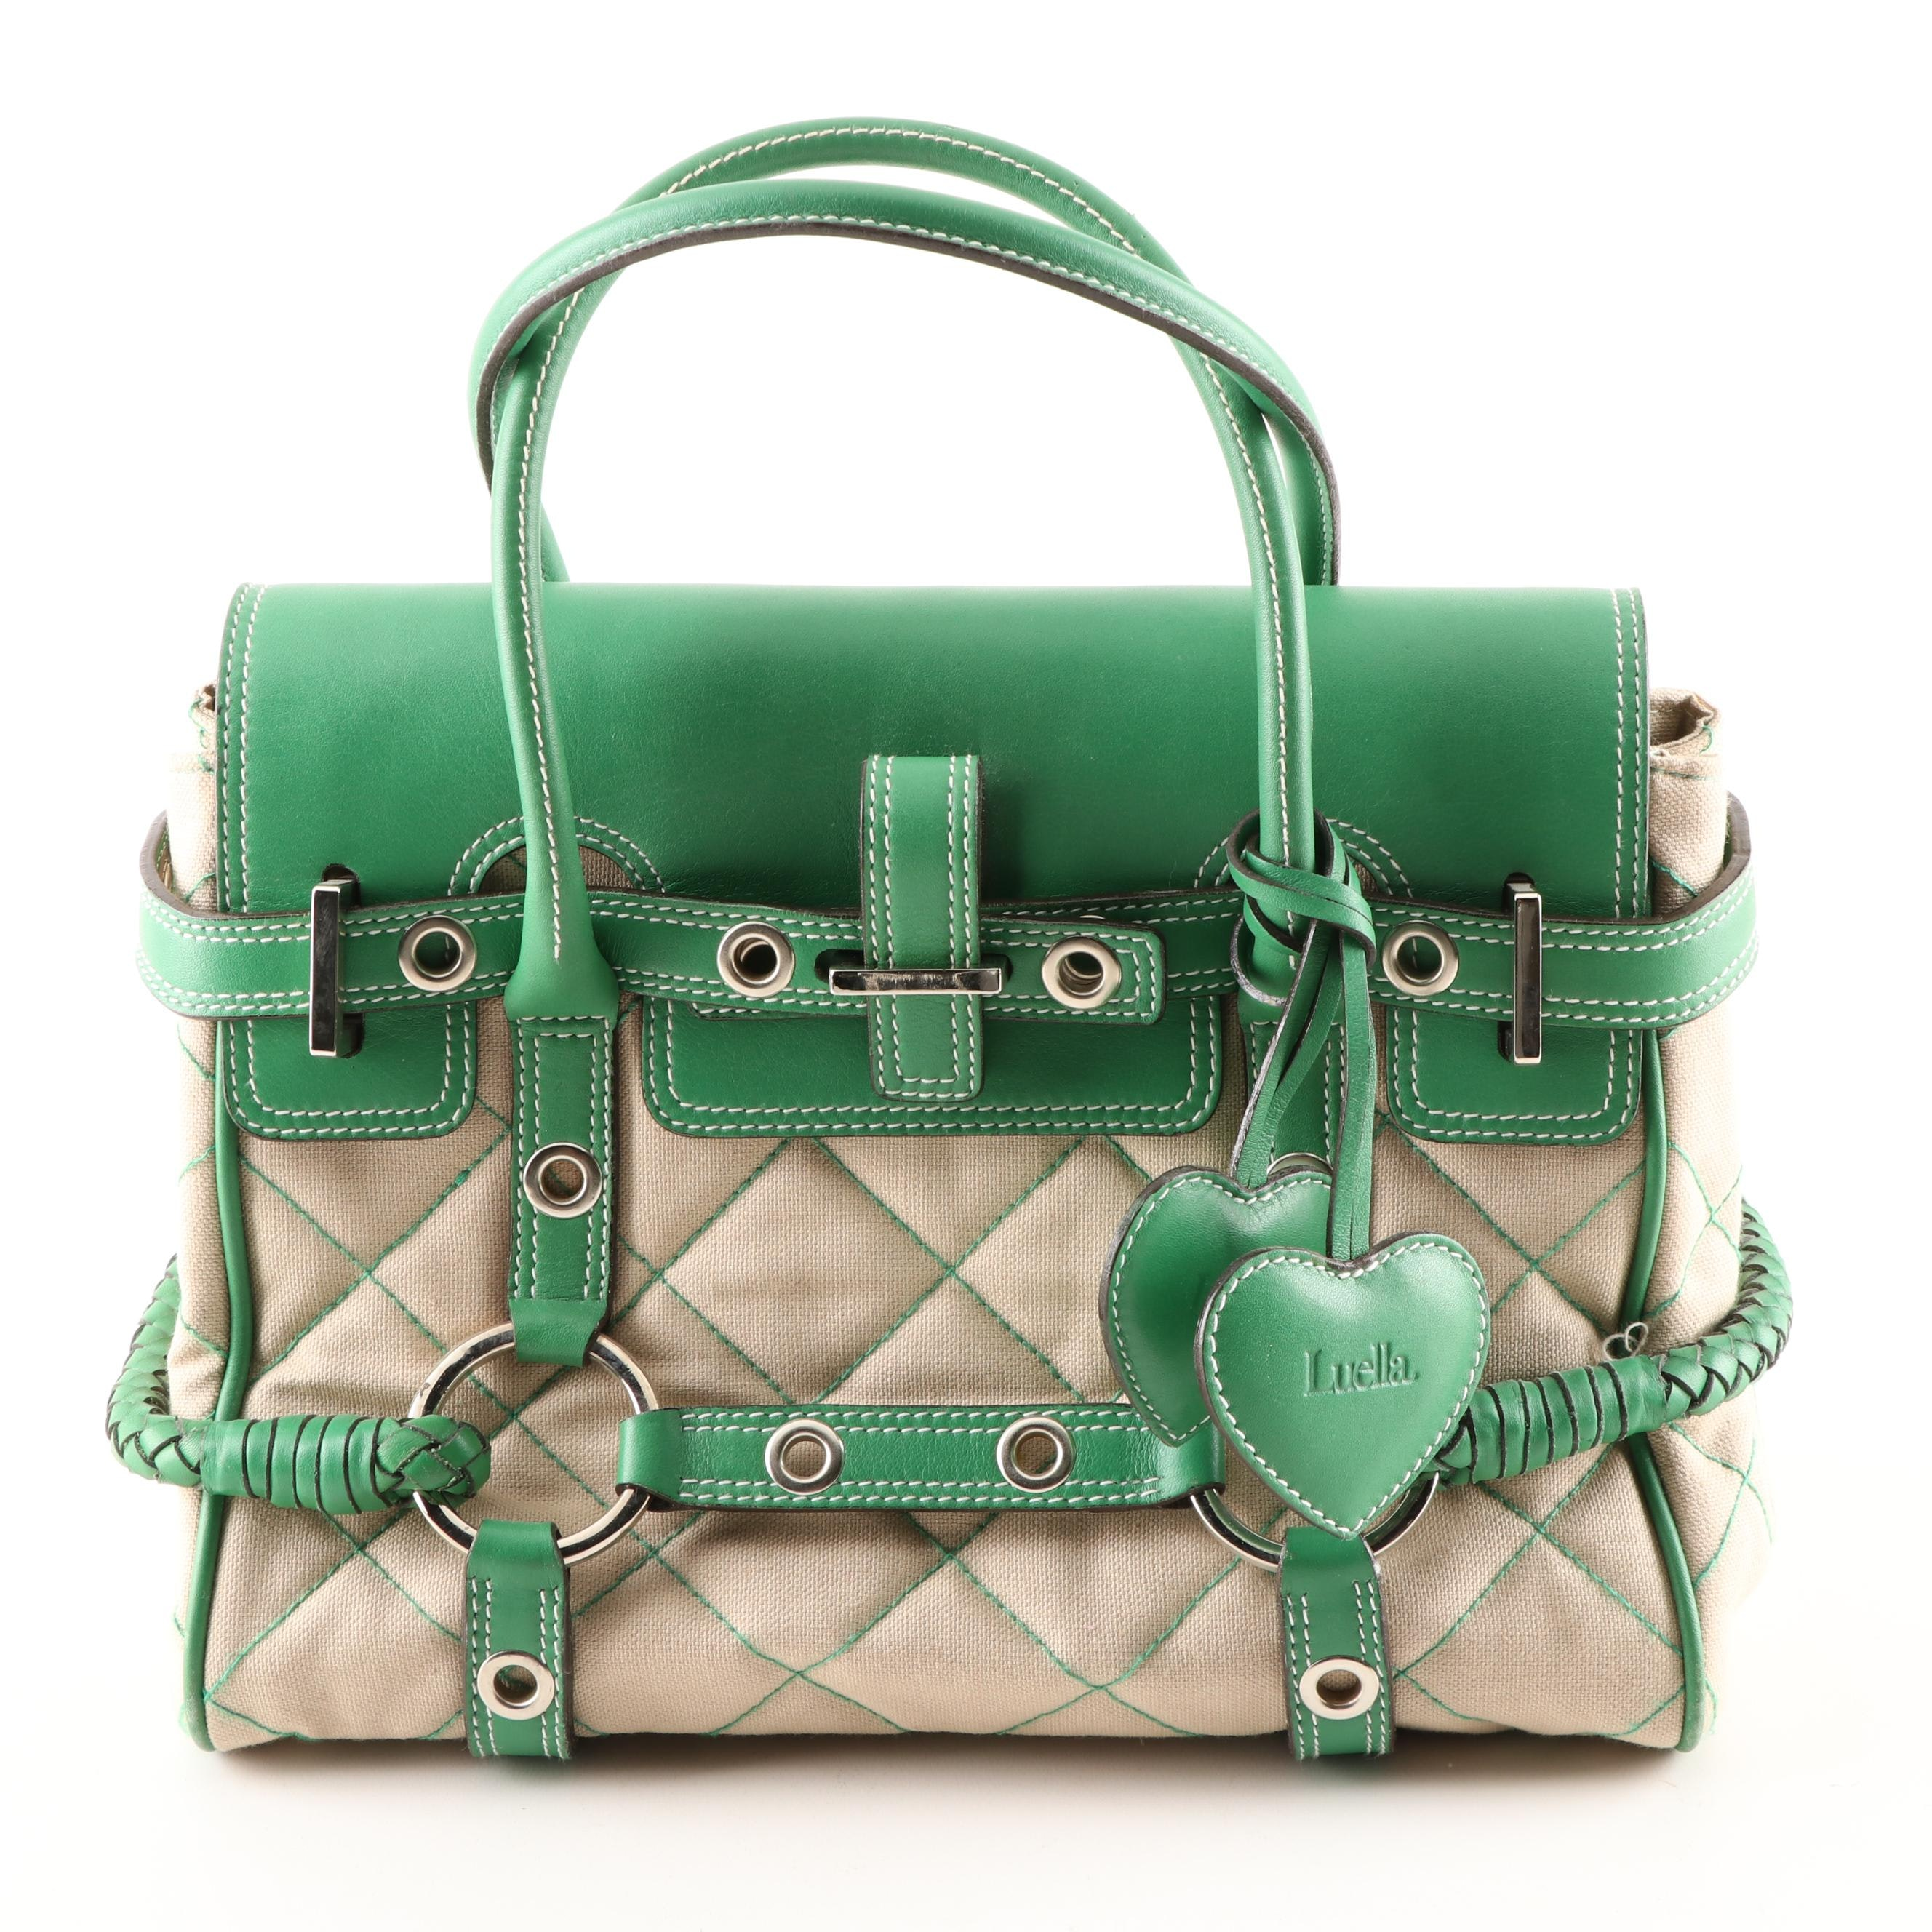 Luella Quilted Beige Canvas and Green Leather Satchel with Contrast Stitching